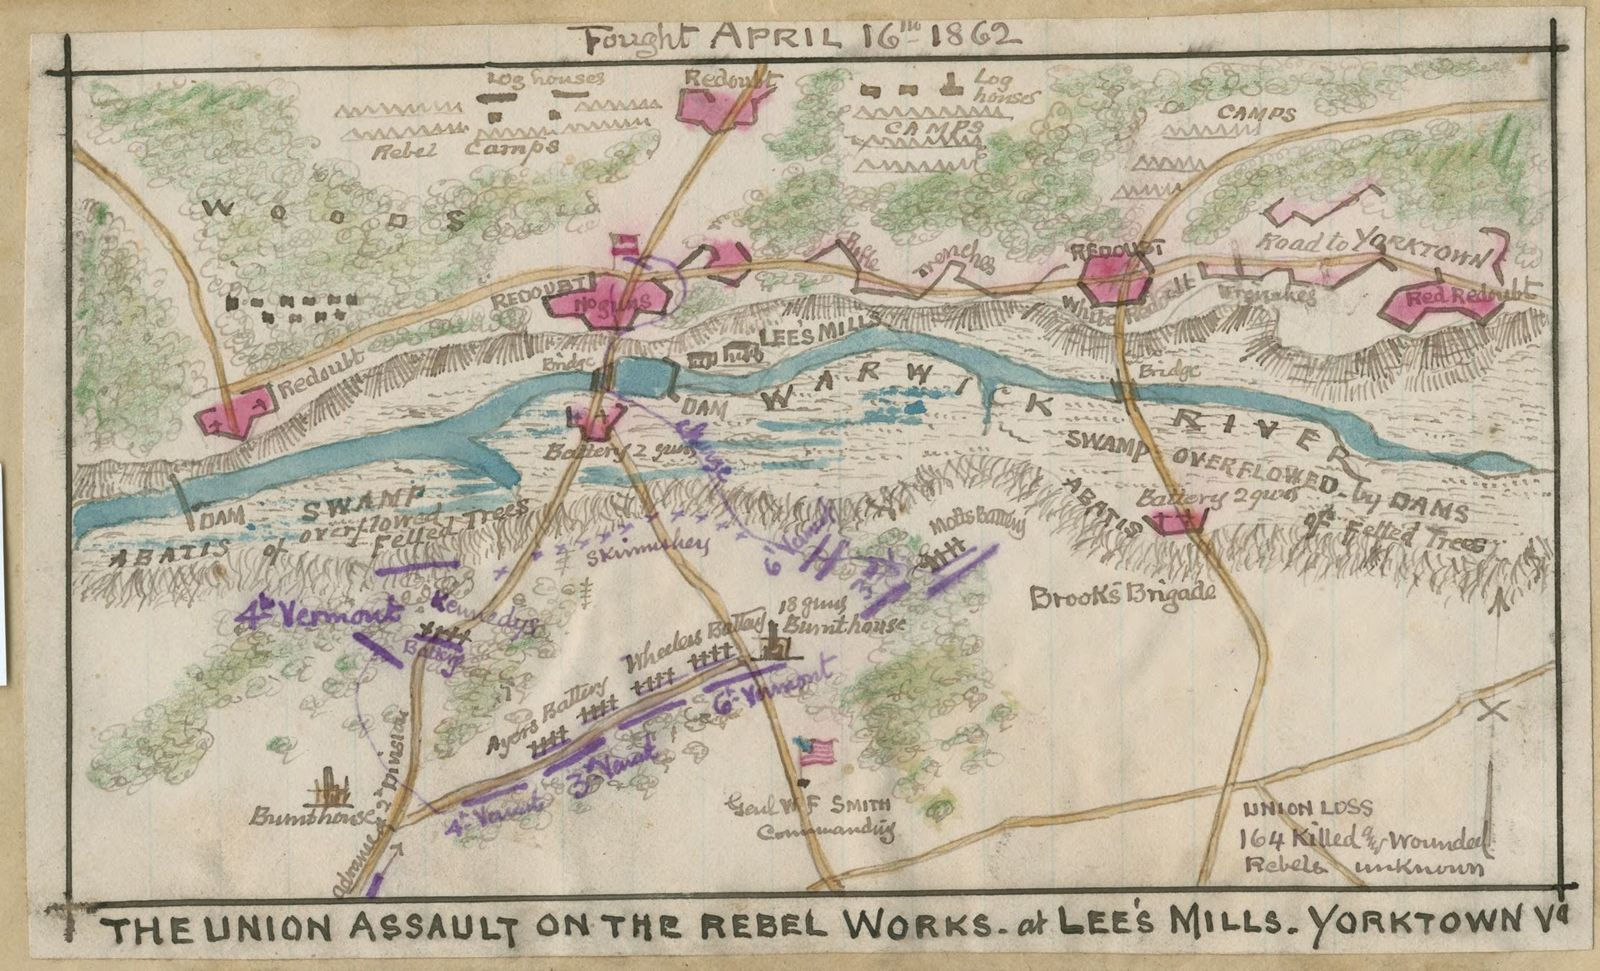 The Union assault on the Rebel works at Lee's Mill, Yorktown, Va.